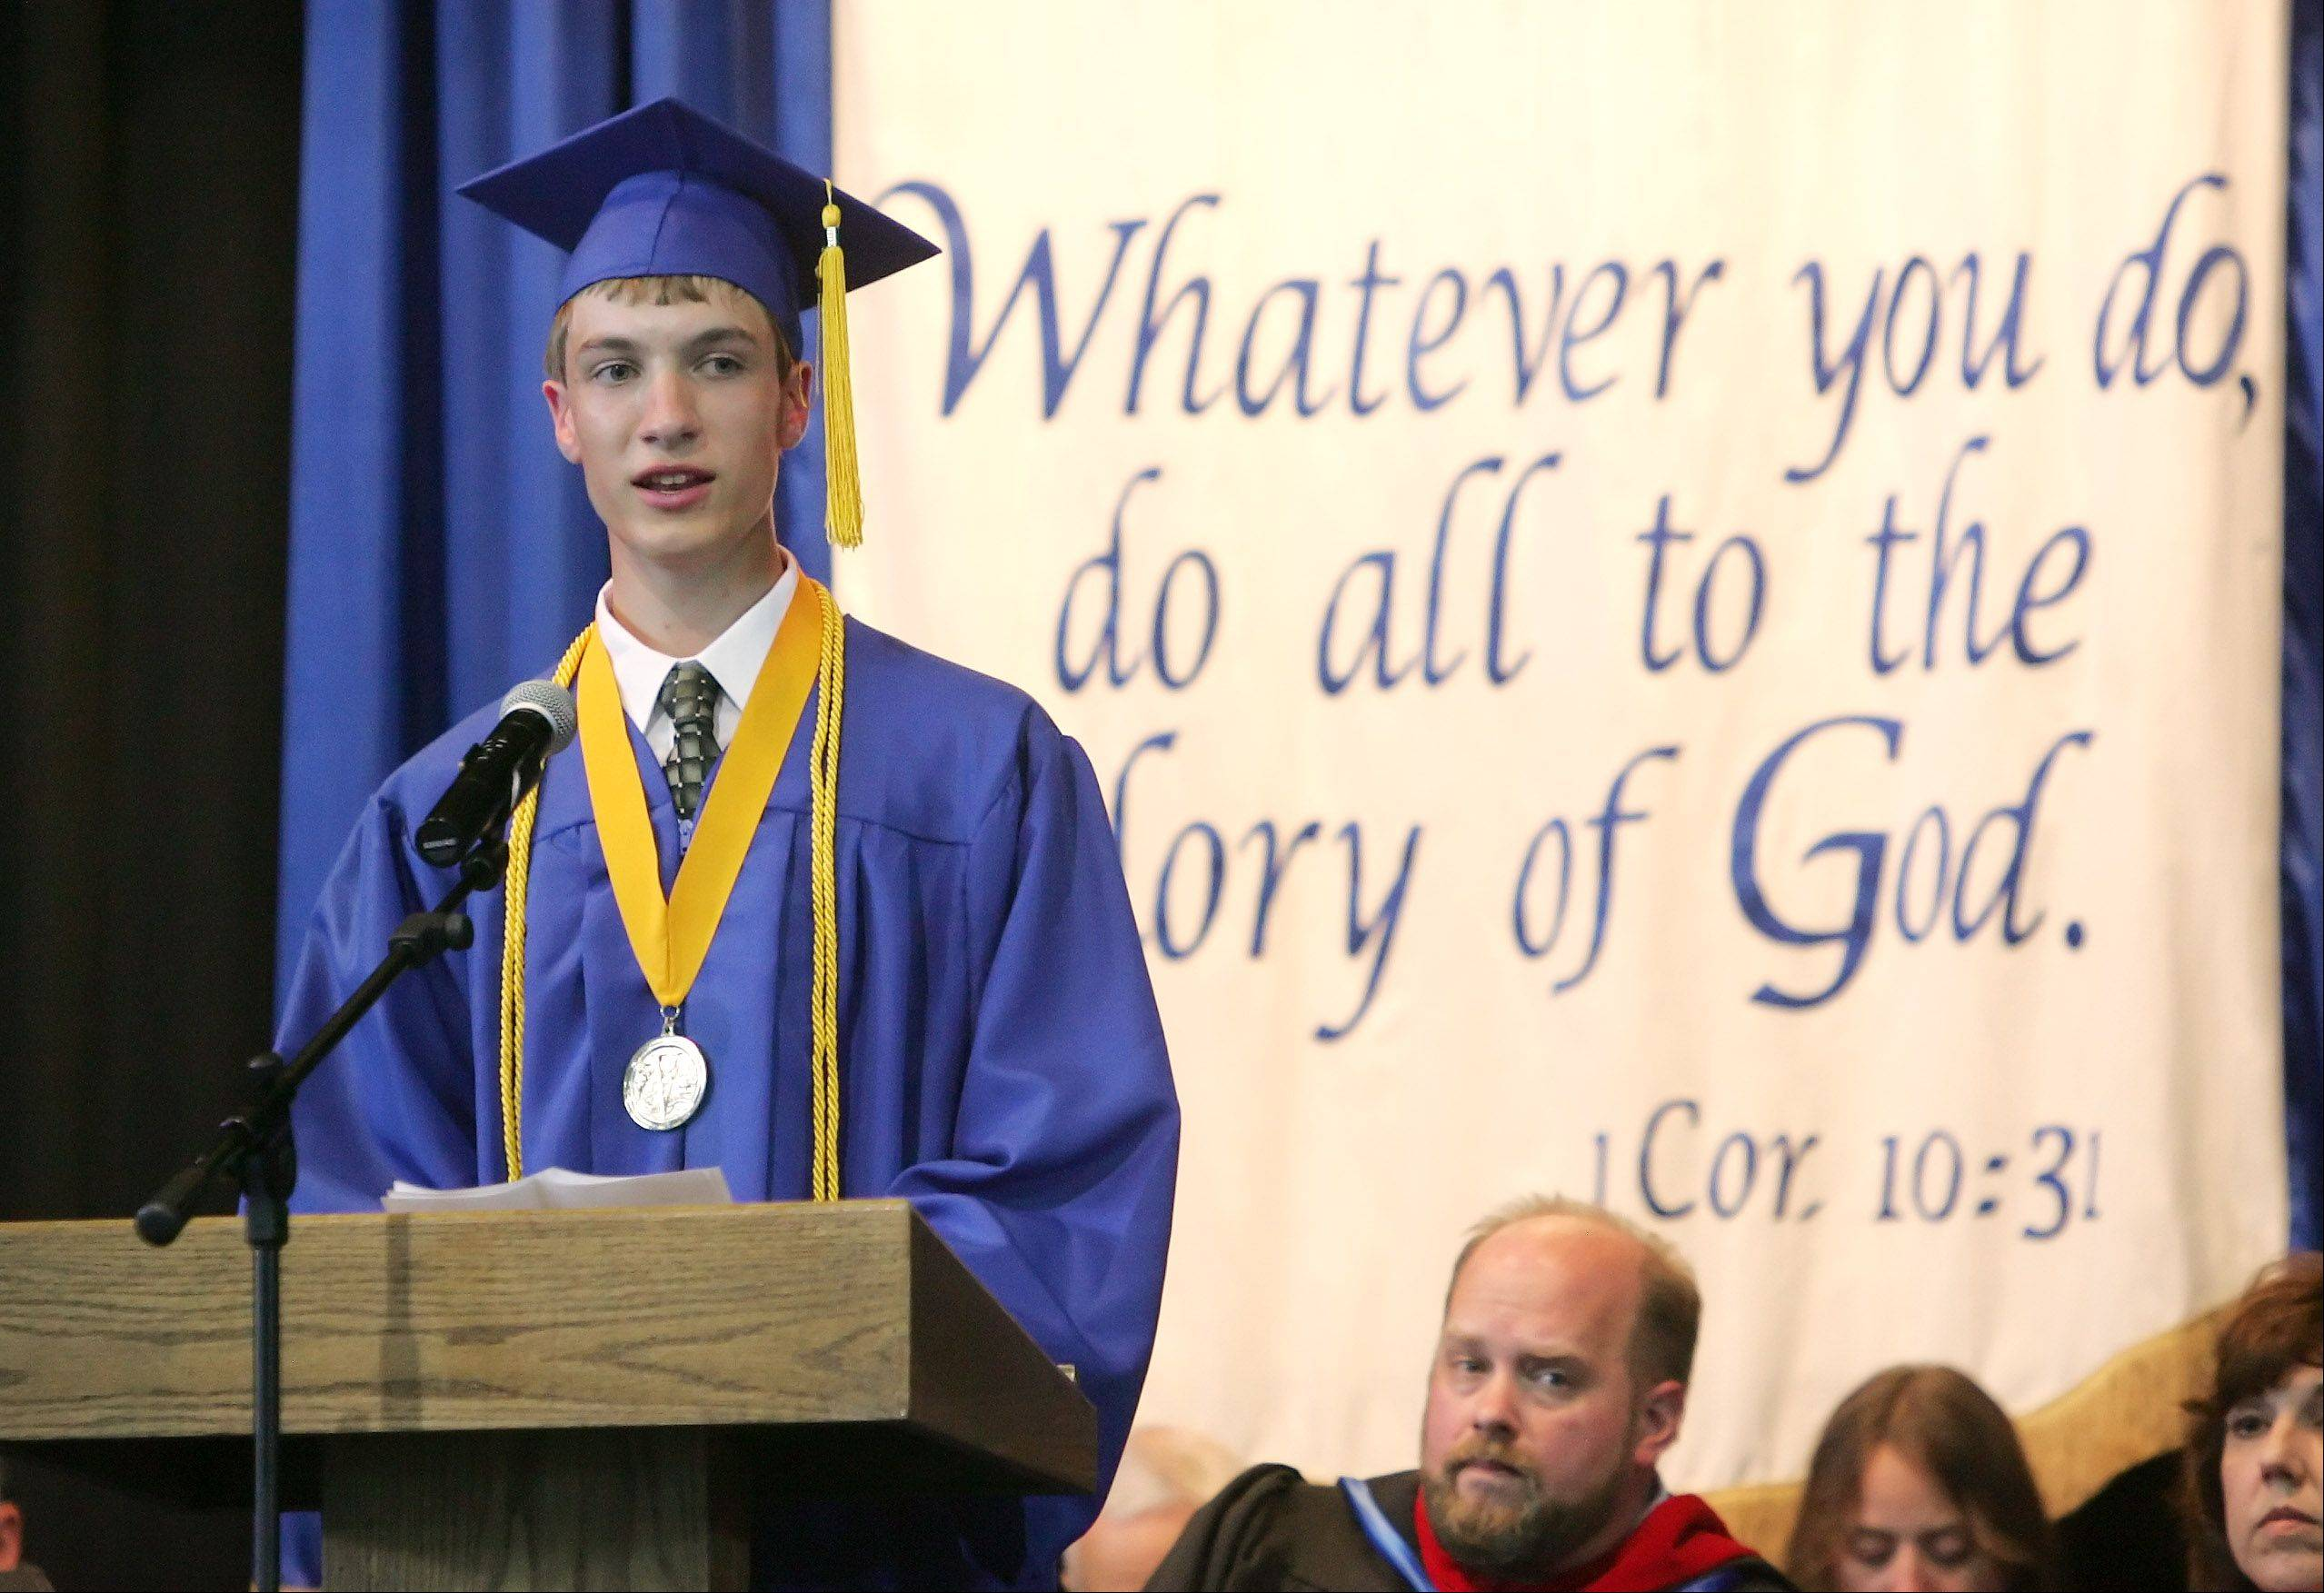 Andrew Johnson gives his valedictorian address during the graduation ceremony at Christian Liberty Academy in Arlington Heights Sunday. This year's graduating class consisted of 50 students.